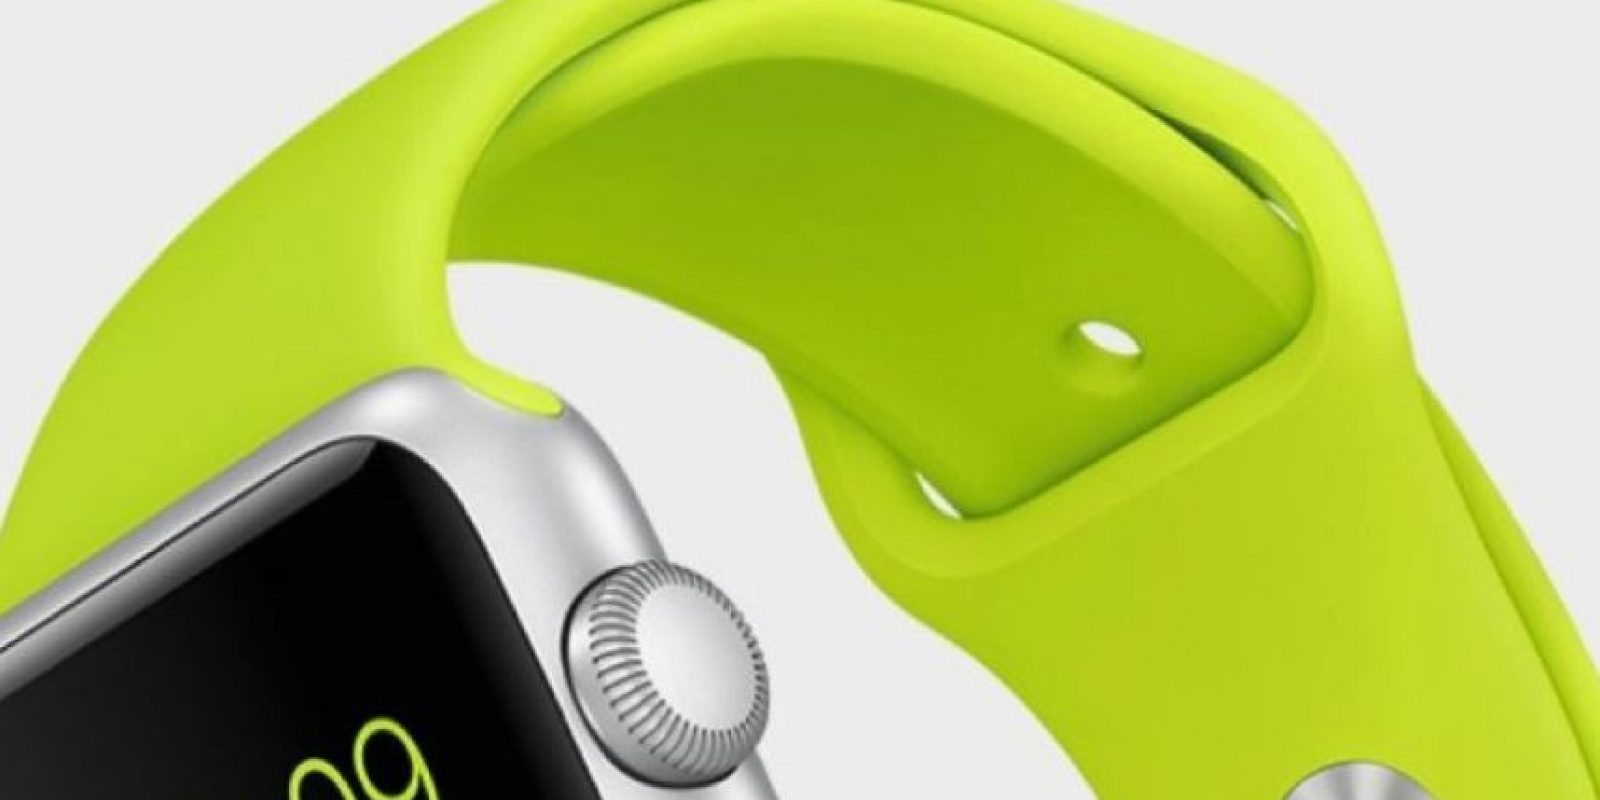 Sistema operativo: Watch OS basado en iOS 8.2. Foto: Apple